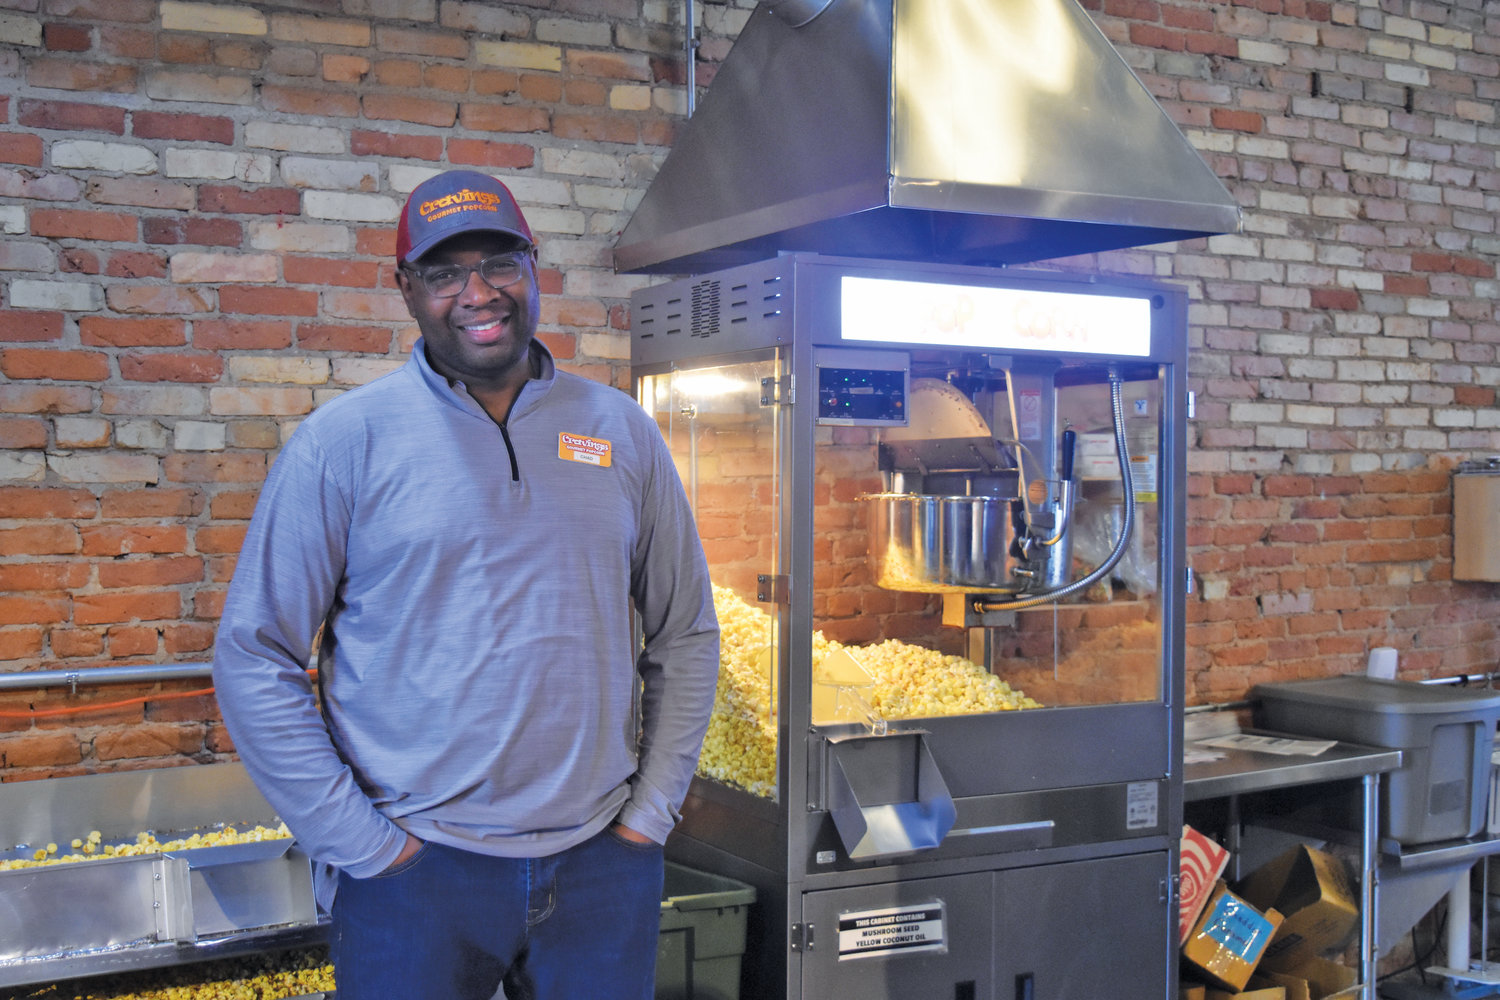 Owner Chad Jordan has been in Old Town making popcorn since 2007.